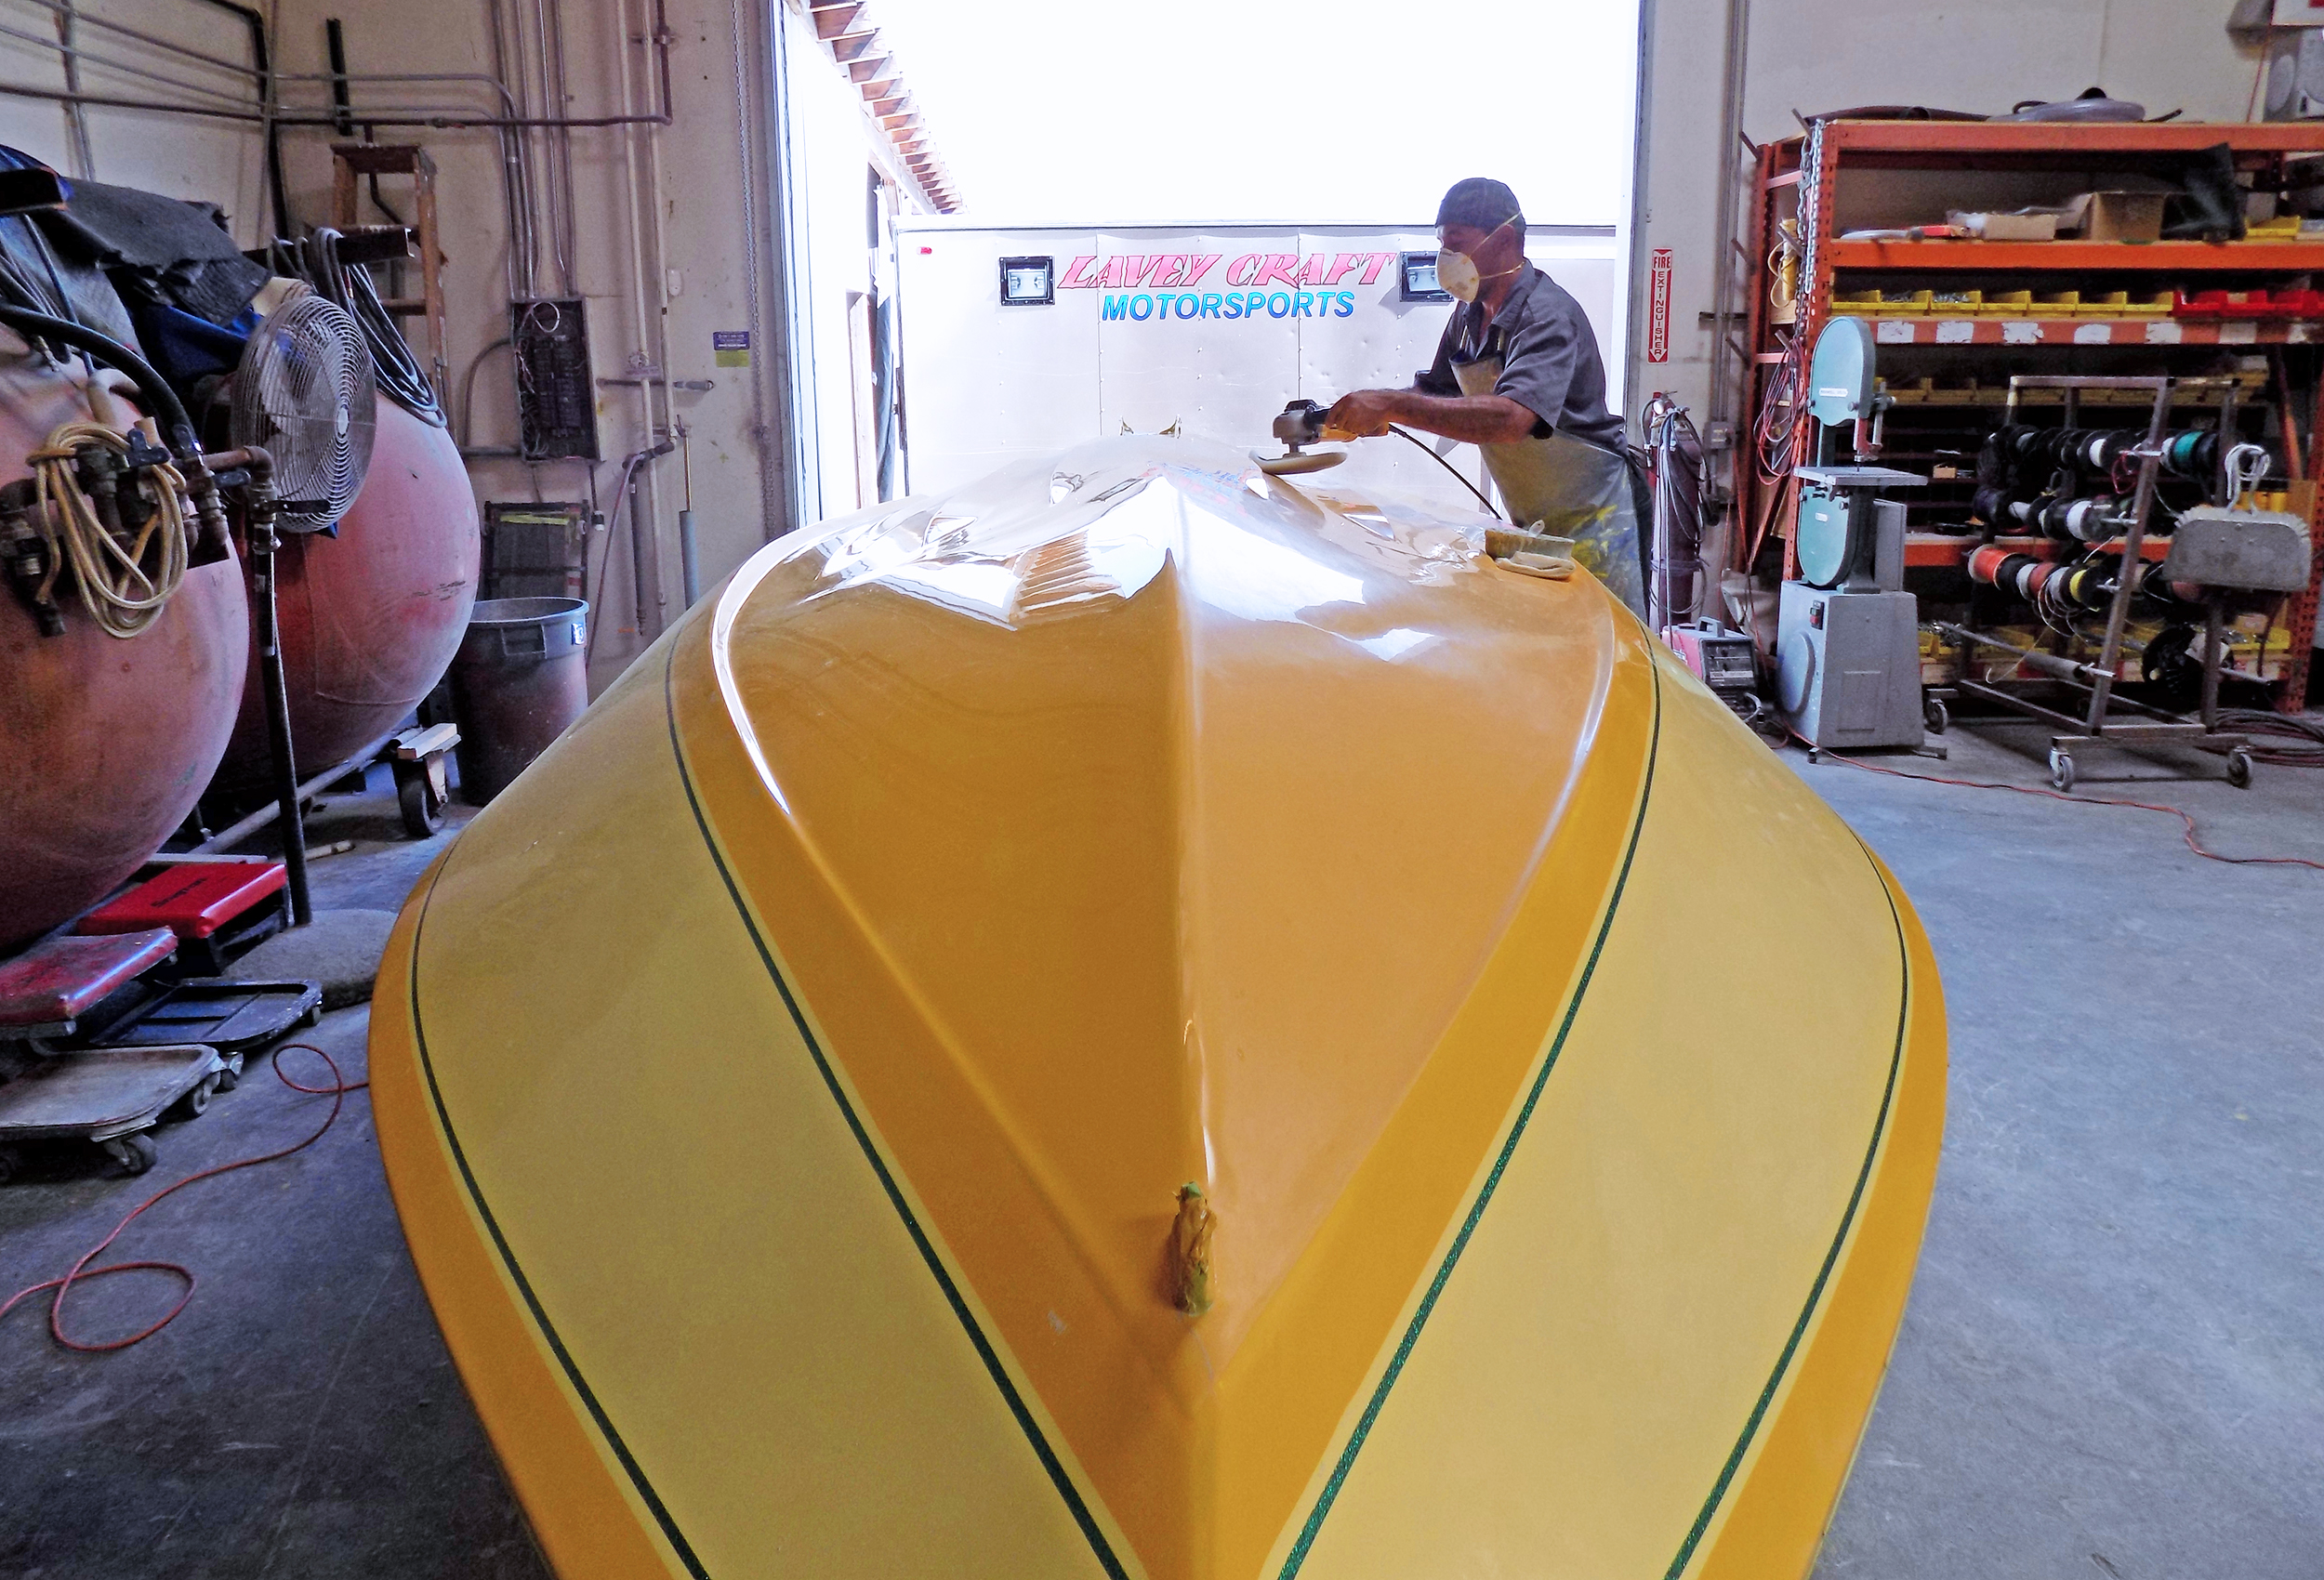 1982 Eliminator hull restoration Lavey Craft - header 1.jpg